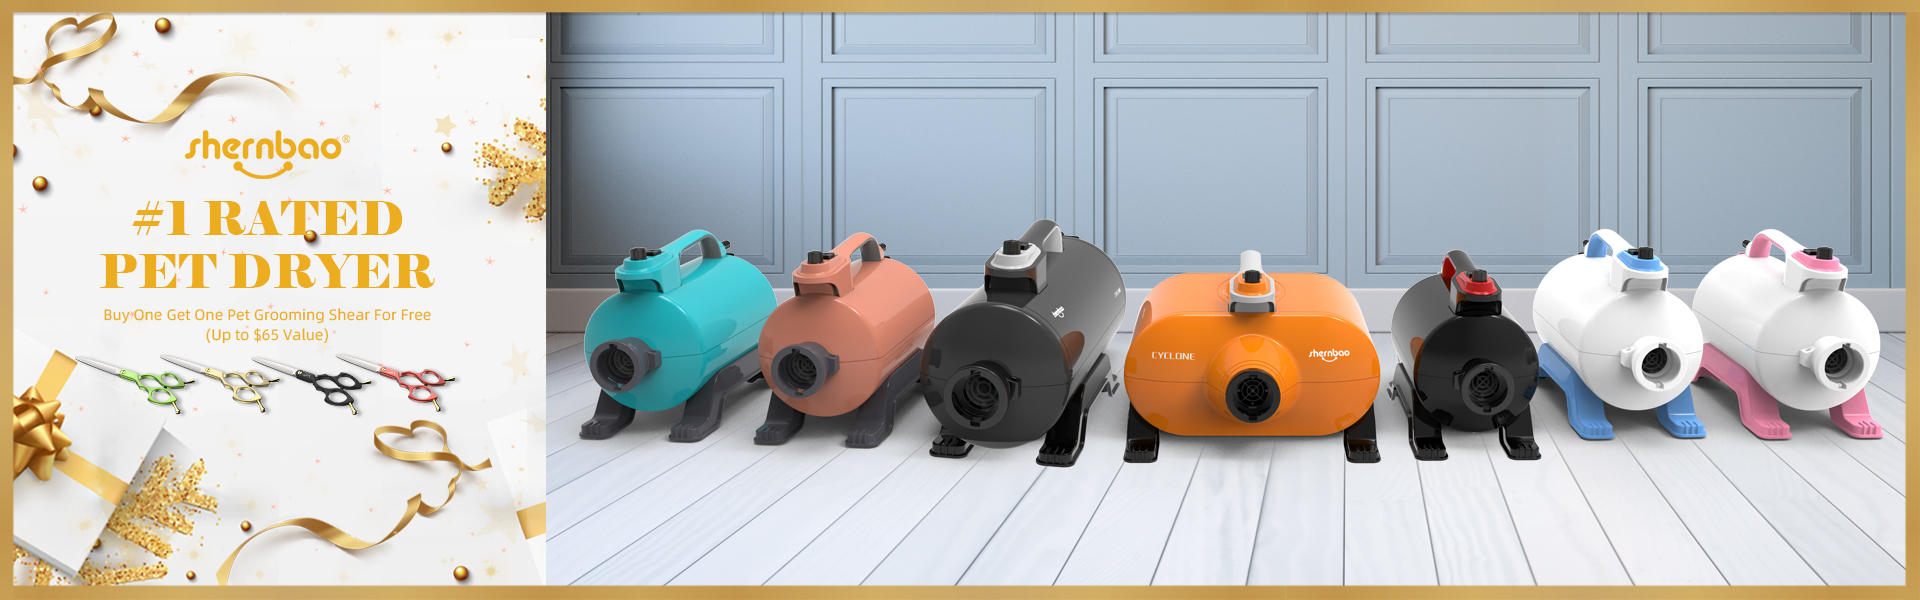 New-Year-Sale-Pet-Dryer